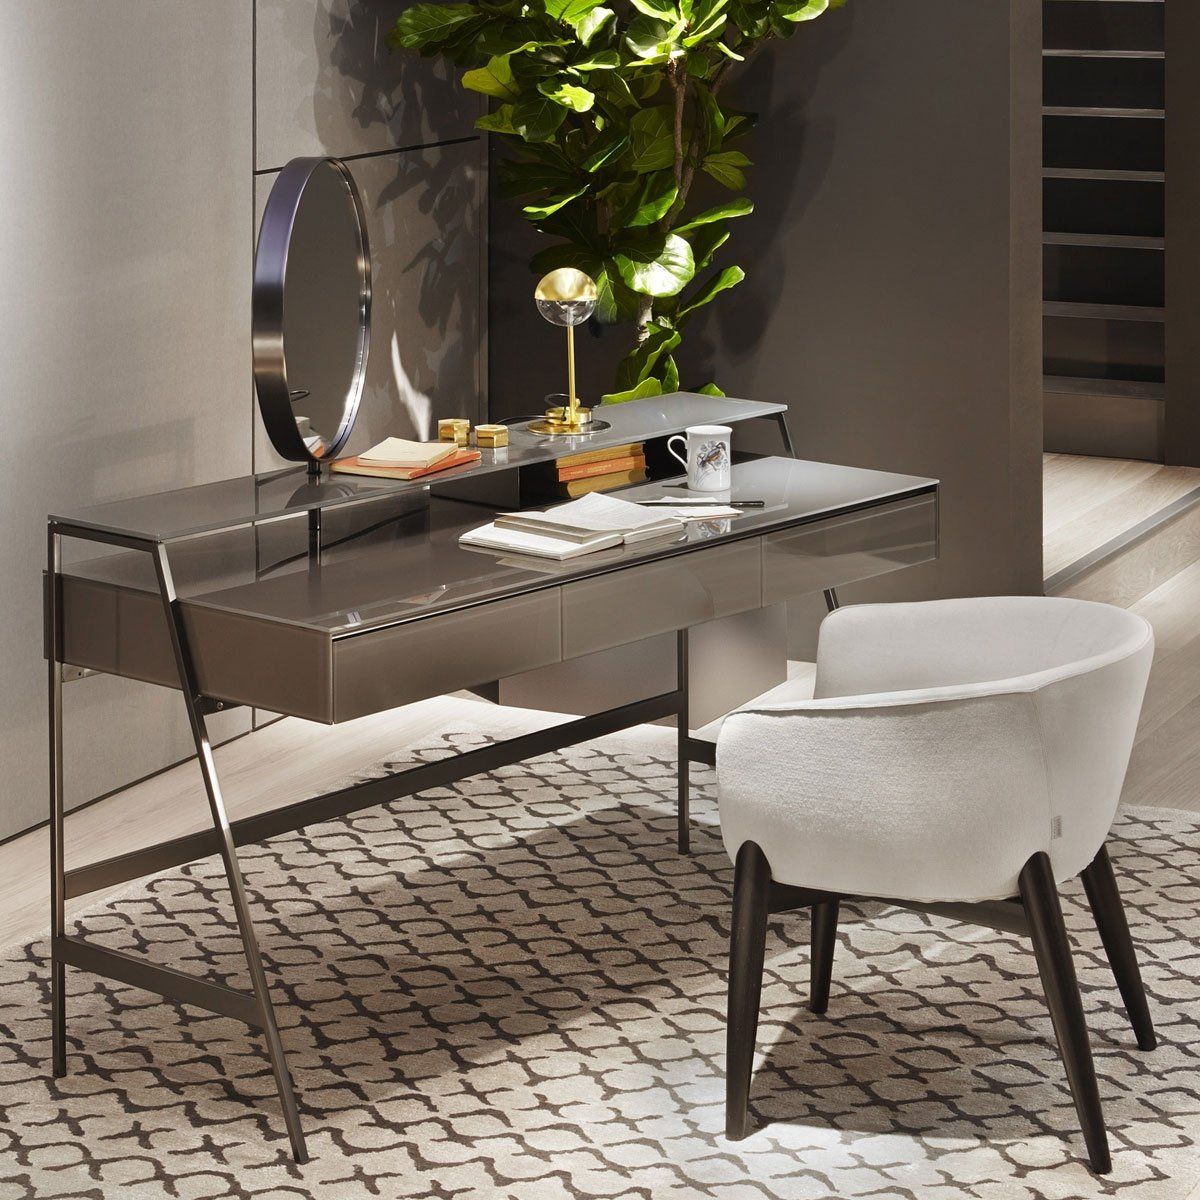 Venere Glass Desk with Mirror Gallotti & Radice